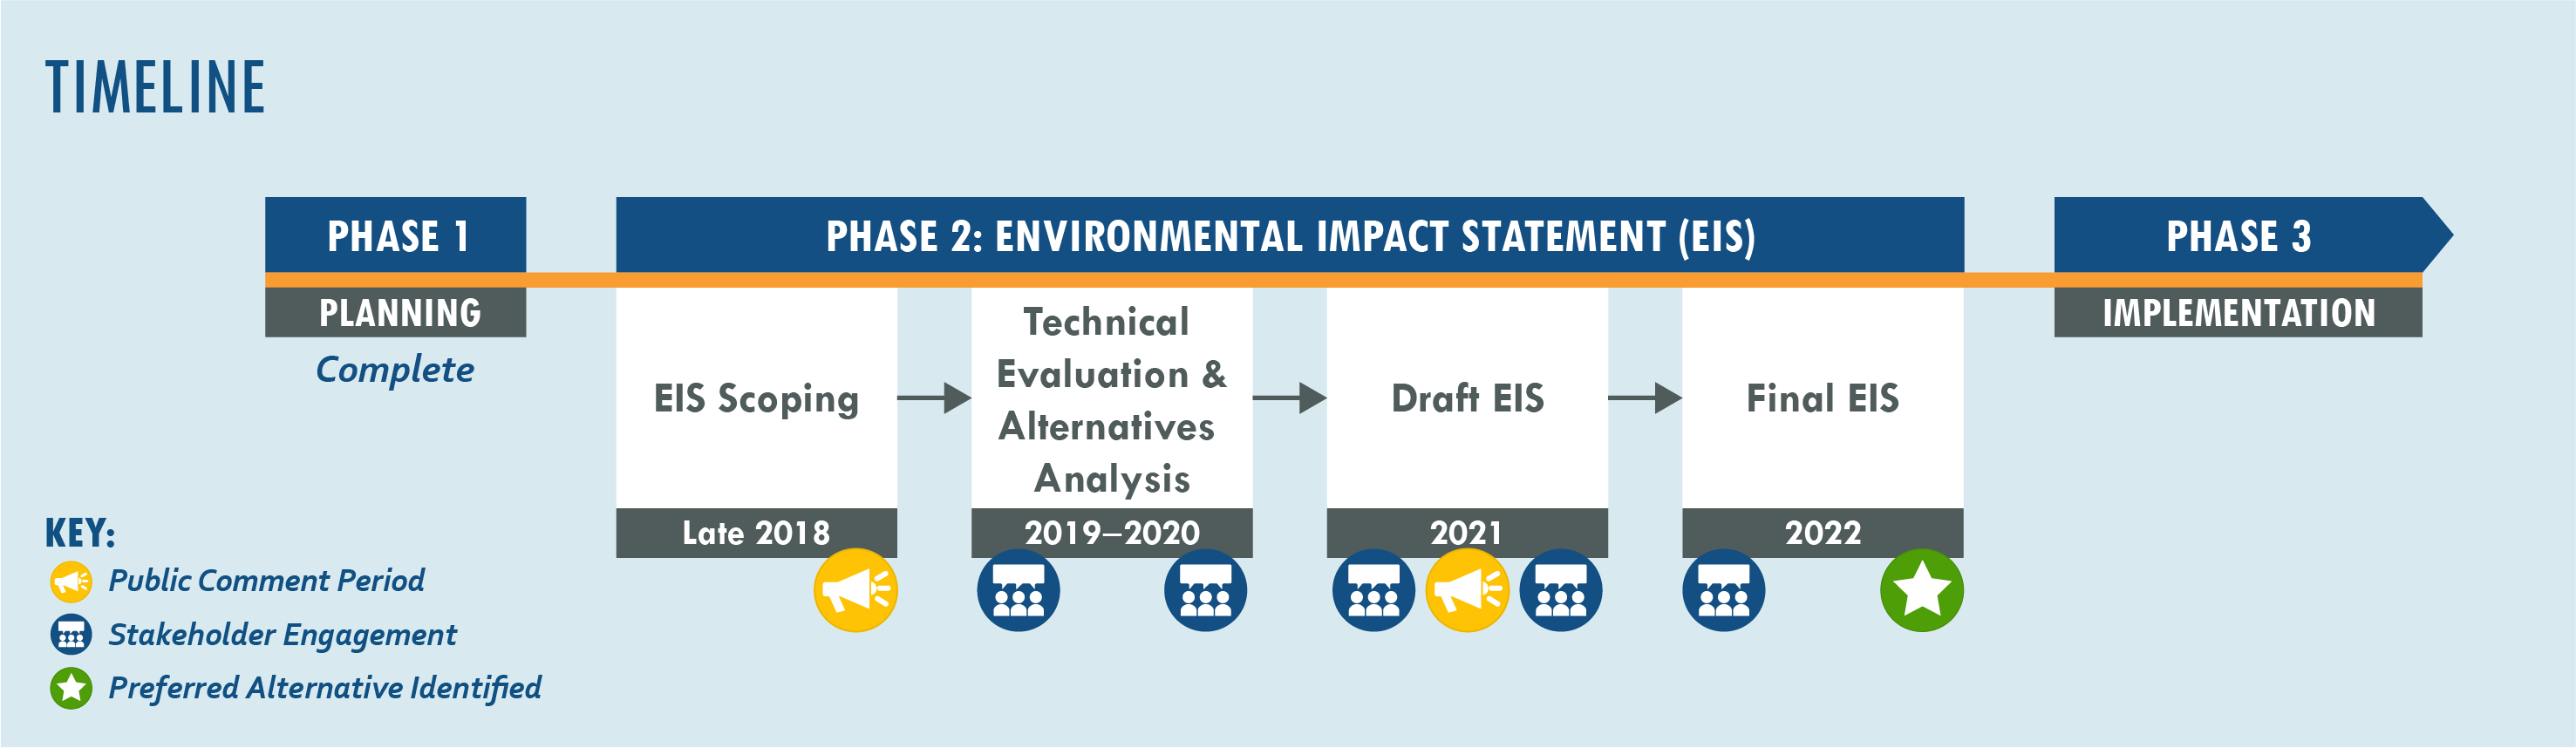 Project timeline including Phase 1: Planning, Phase 2: Environmental Impact Statement, and Phase 3: Implementation. Public comment periods occur in Late 2018 during scoping and 2020 following release of the Draft EIS.